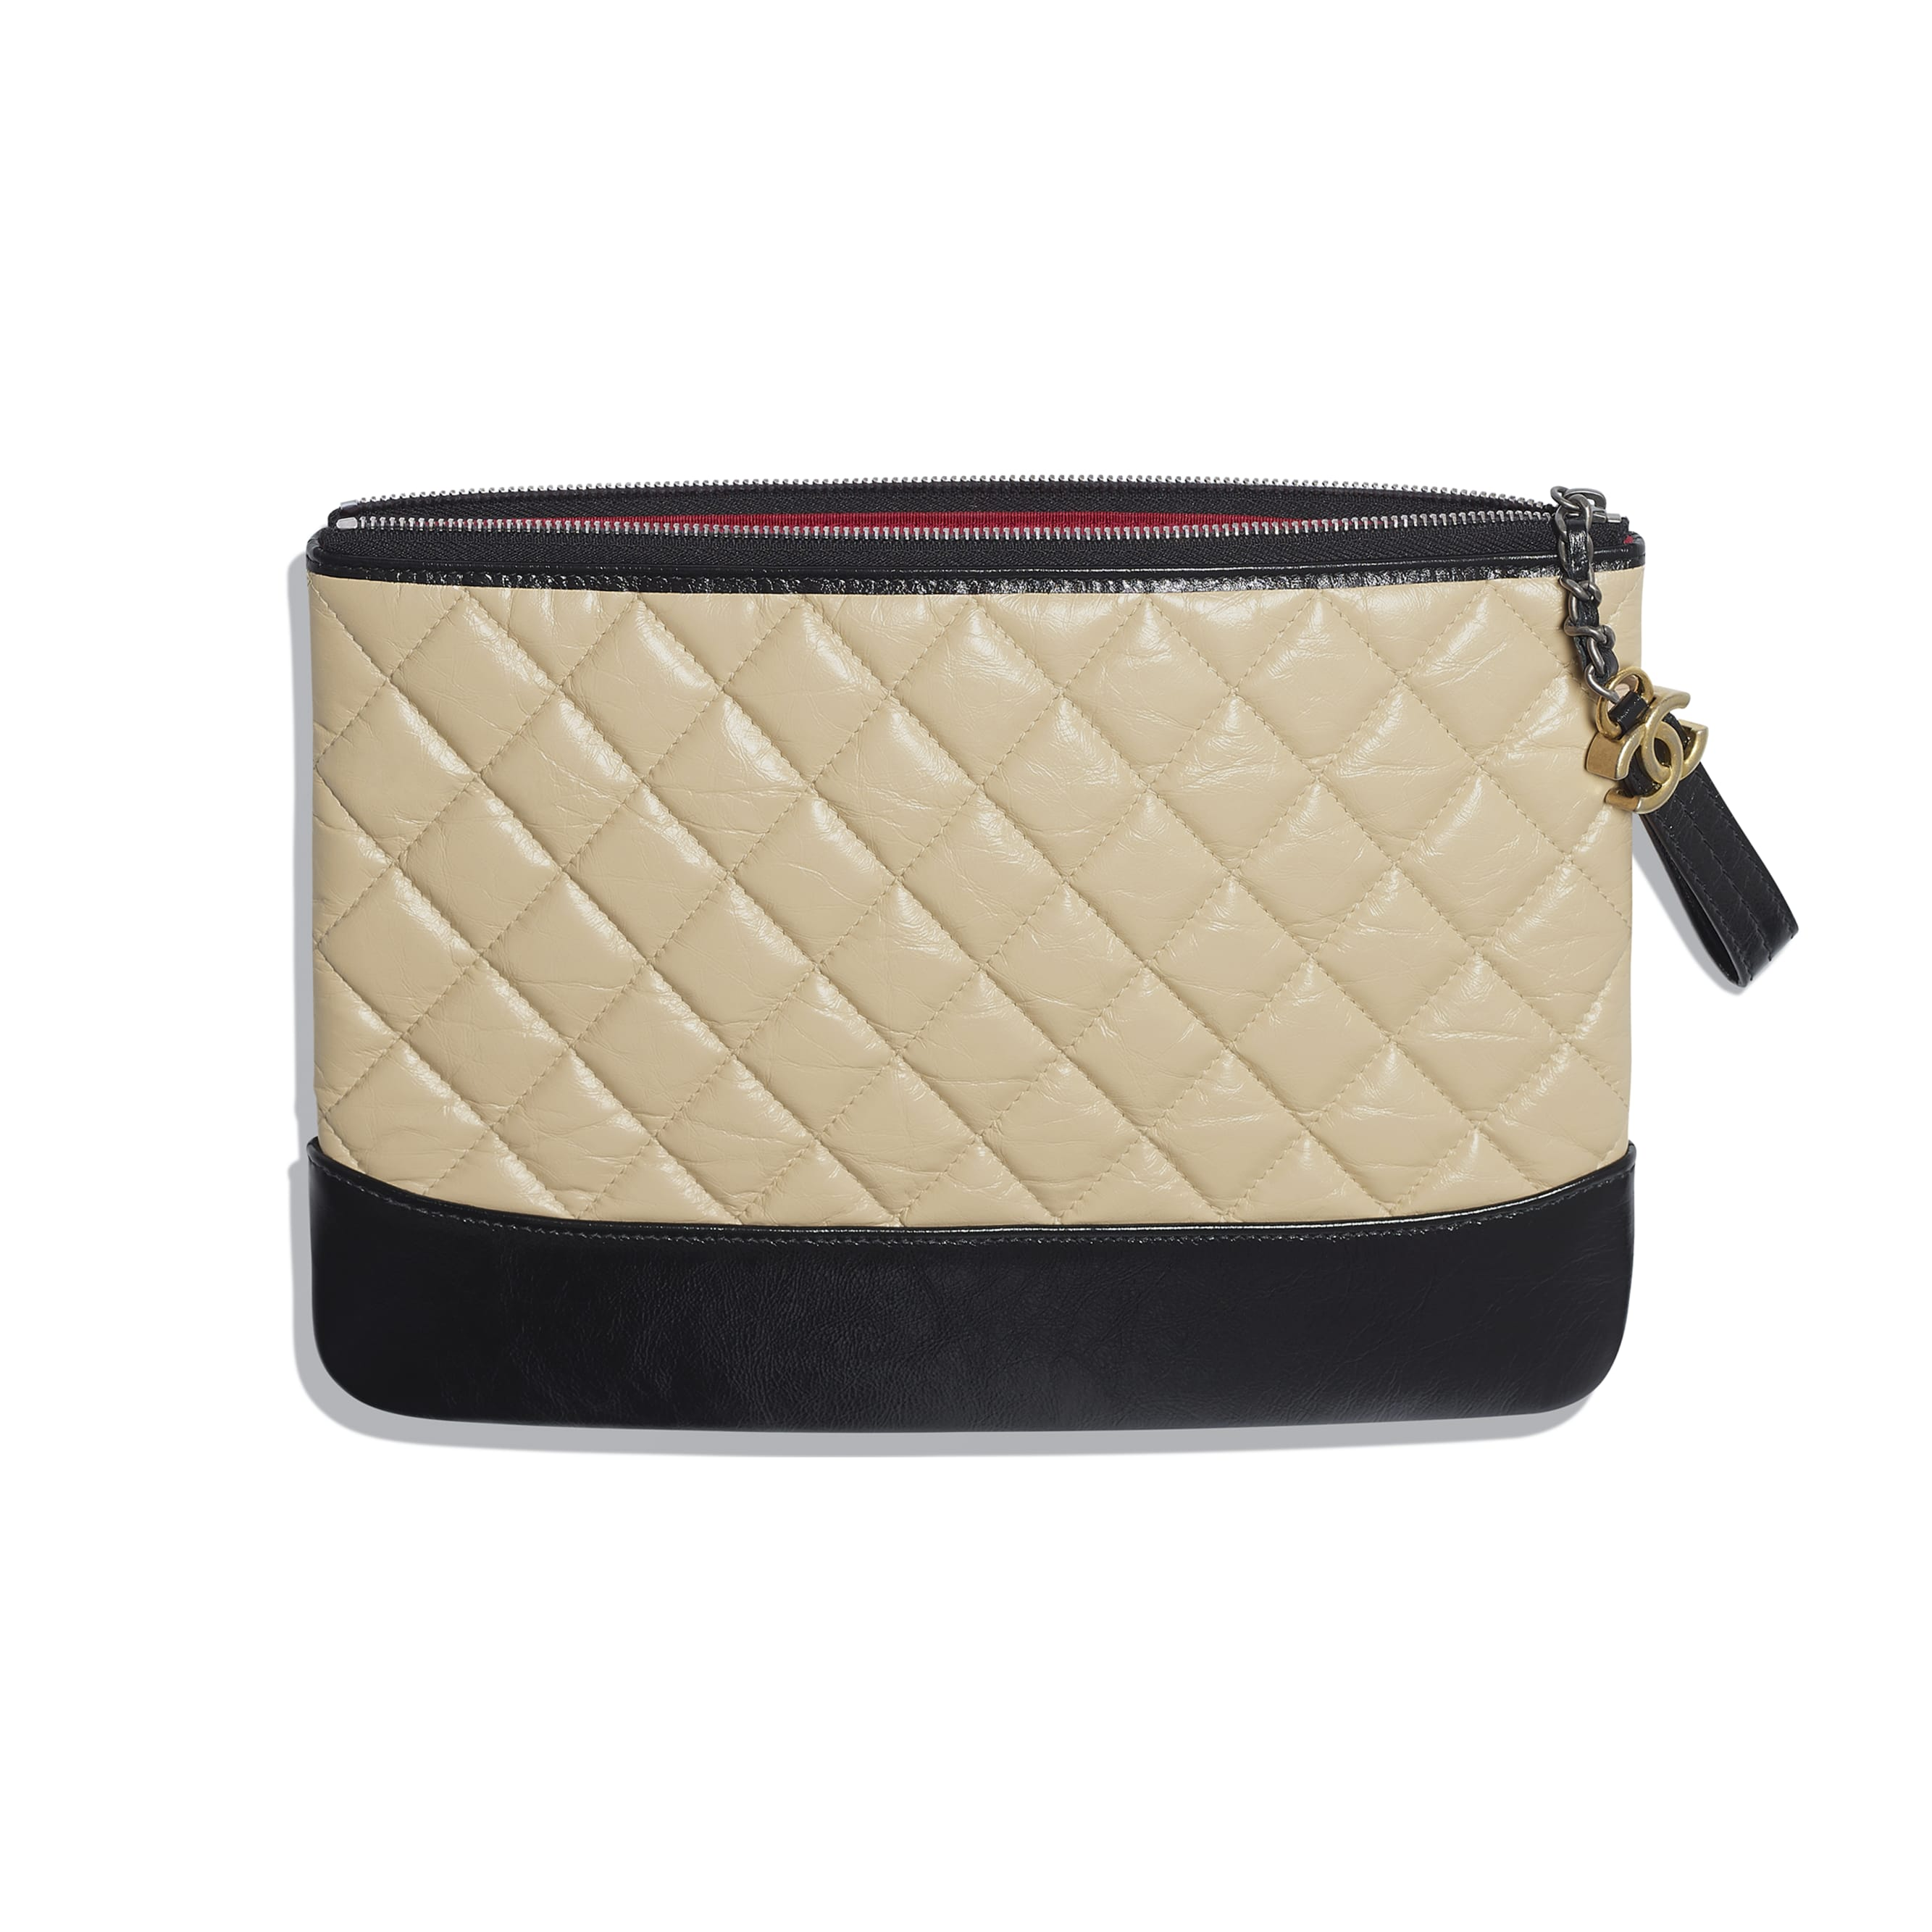 Pouch - Beige & Black - Aged Calfskin, Smooth Calfskin, Silver-Tone & Gold-Tone Metal - Other view - see standard sized version